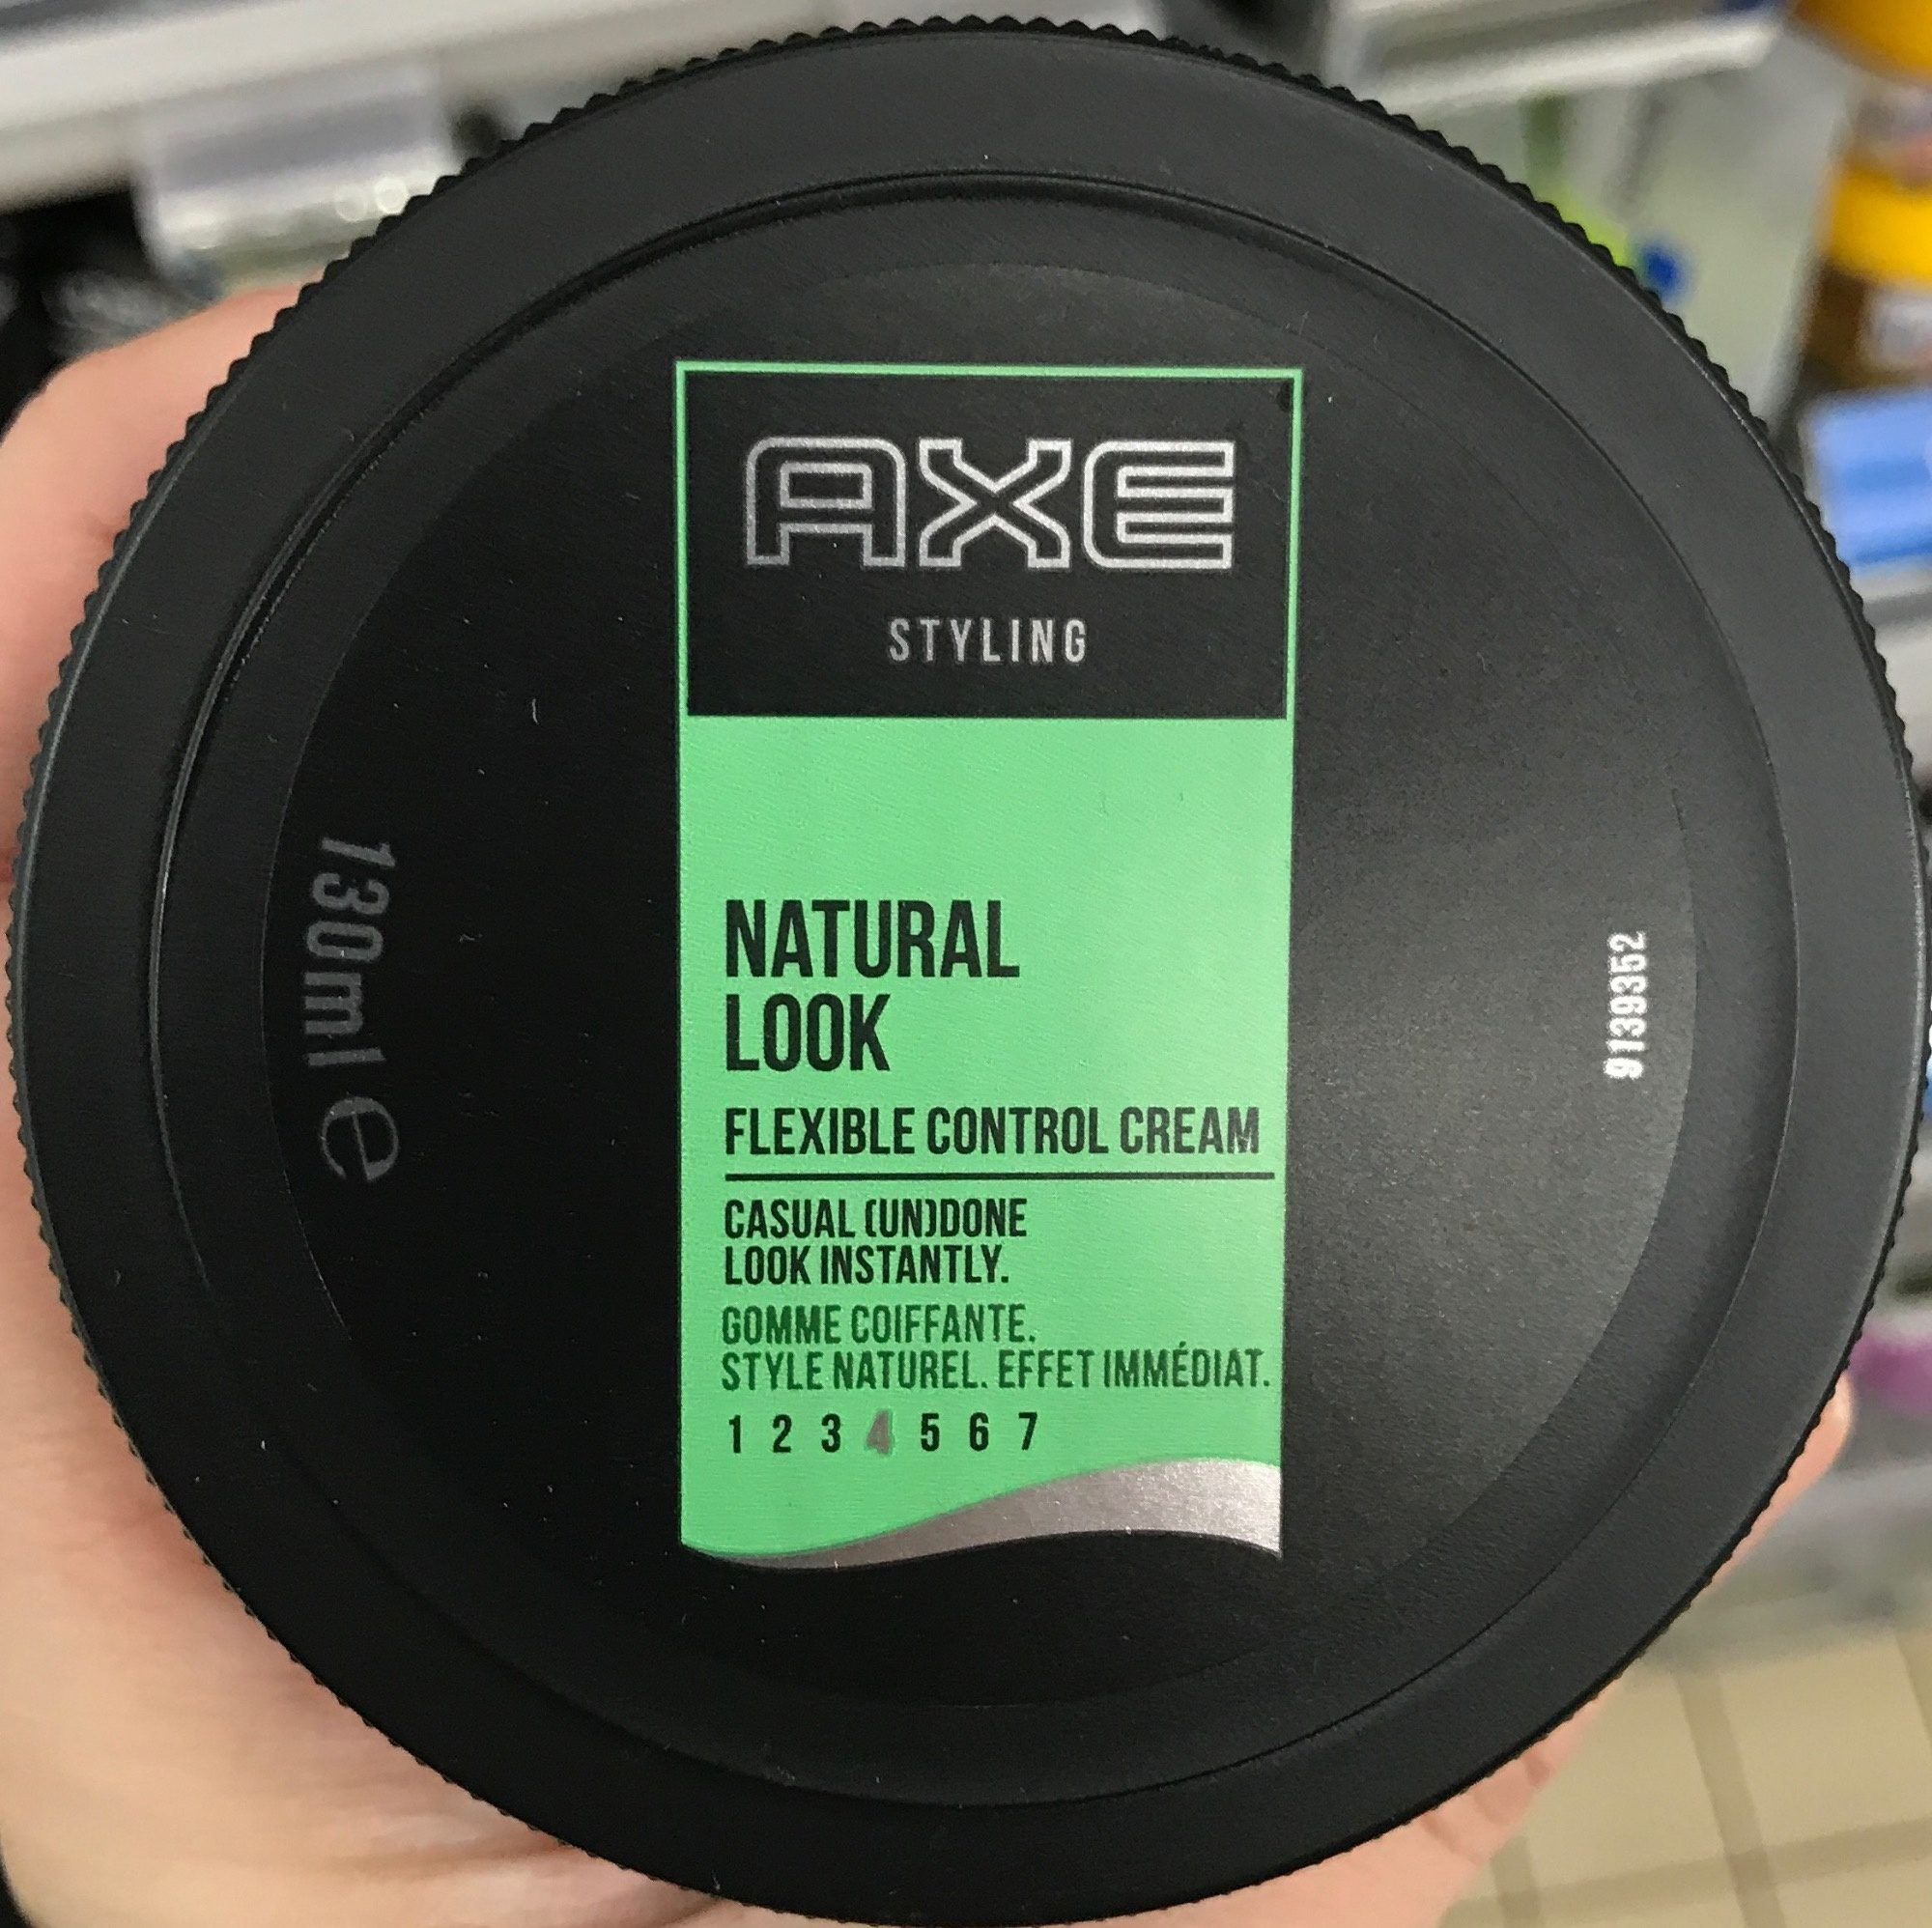 Styling Natural Look Flexible Control Cream - Product